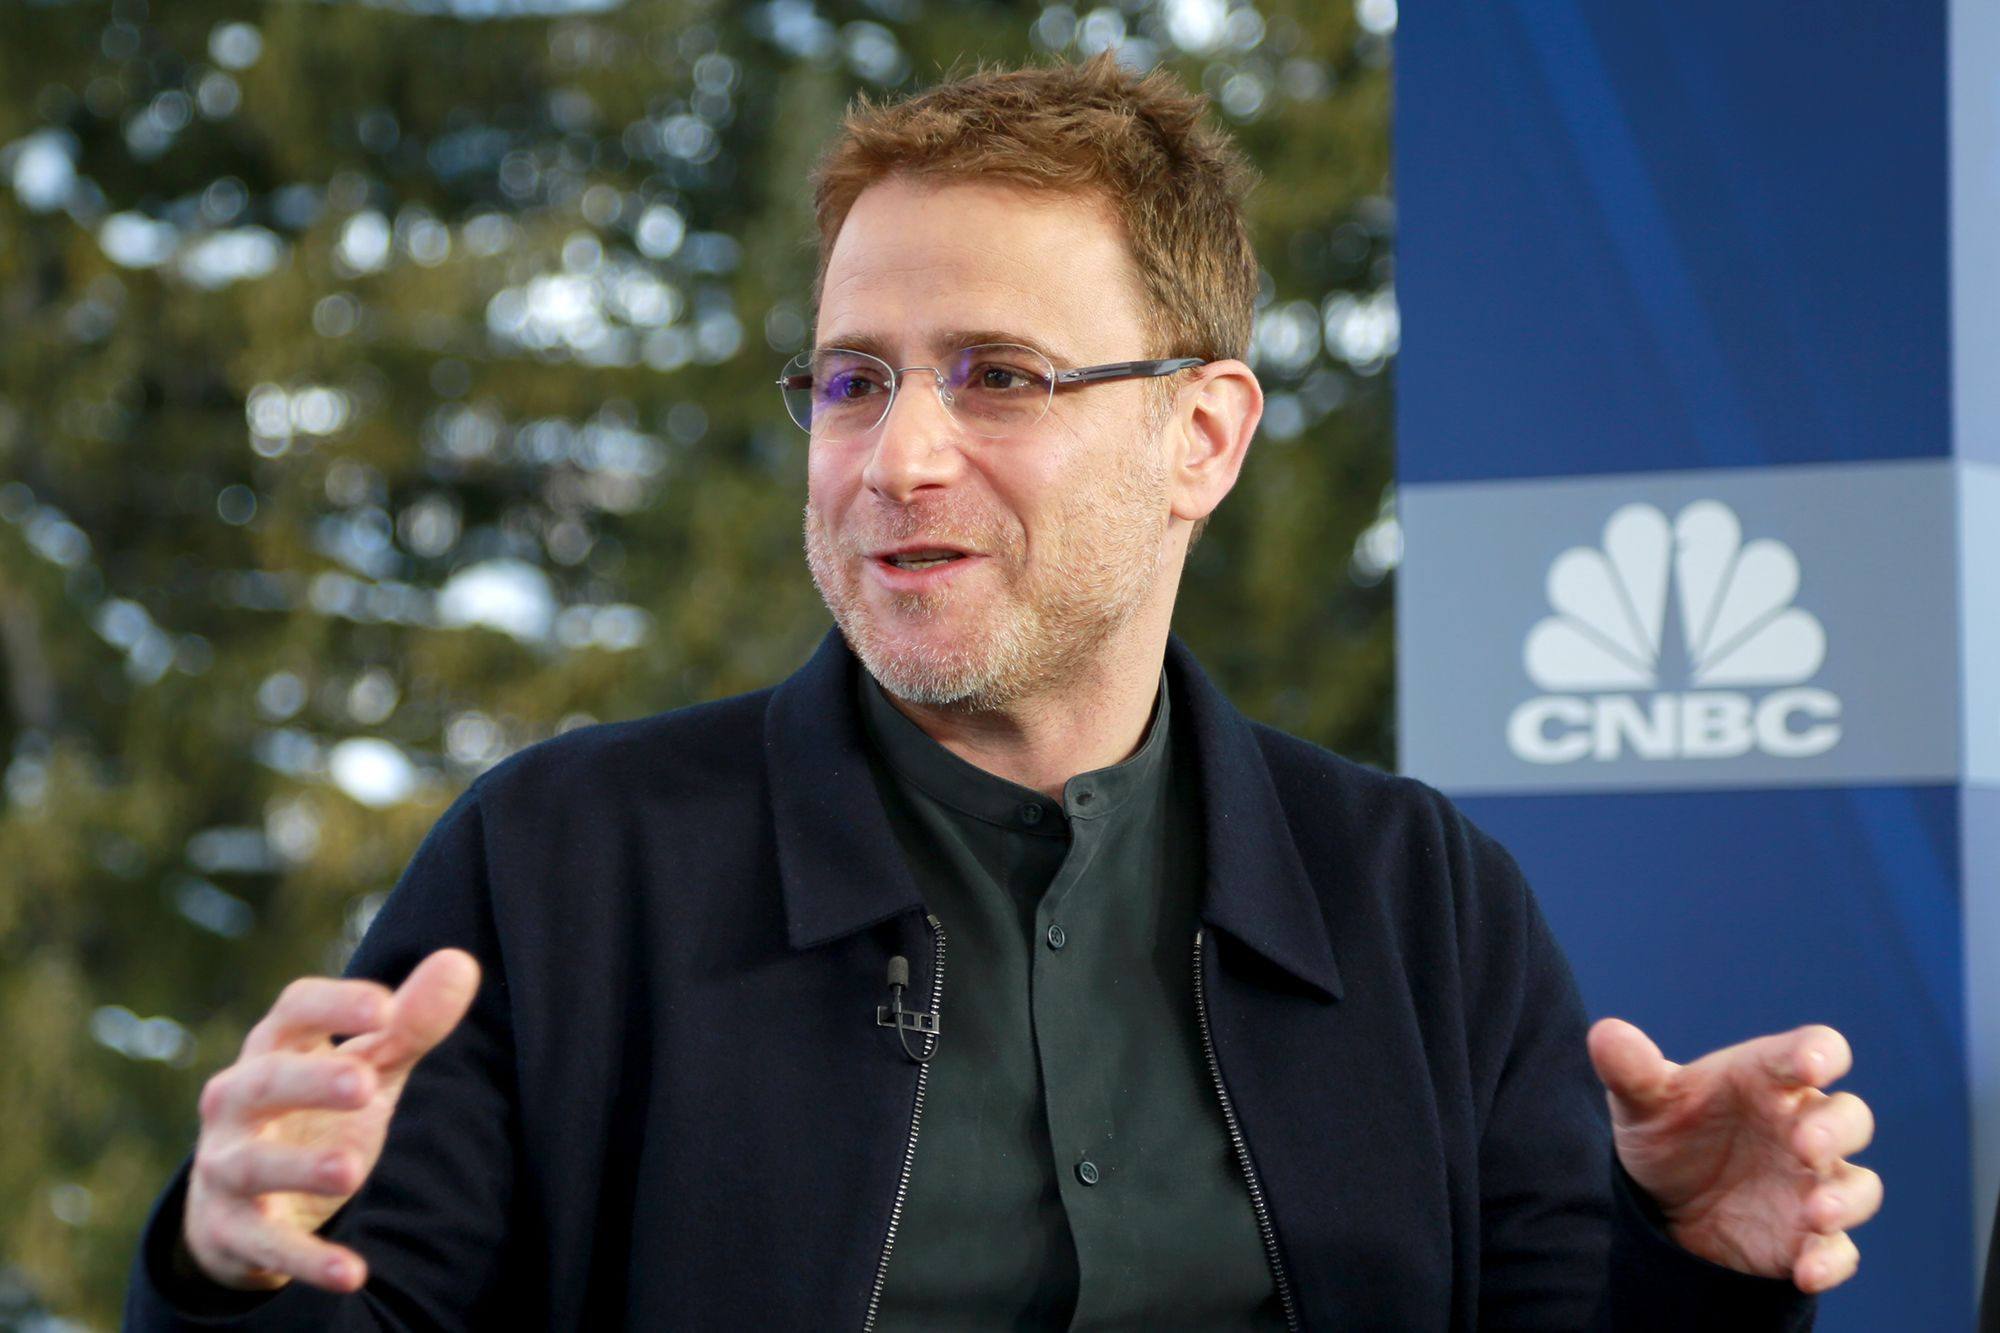 Slack changes ticker symbol to WORK ahead of NYSE debut